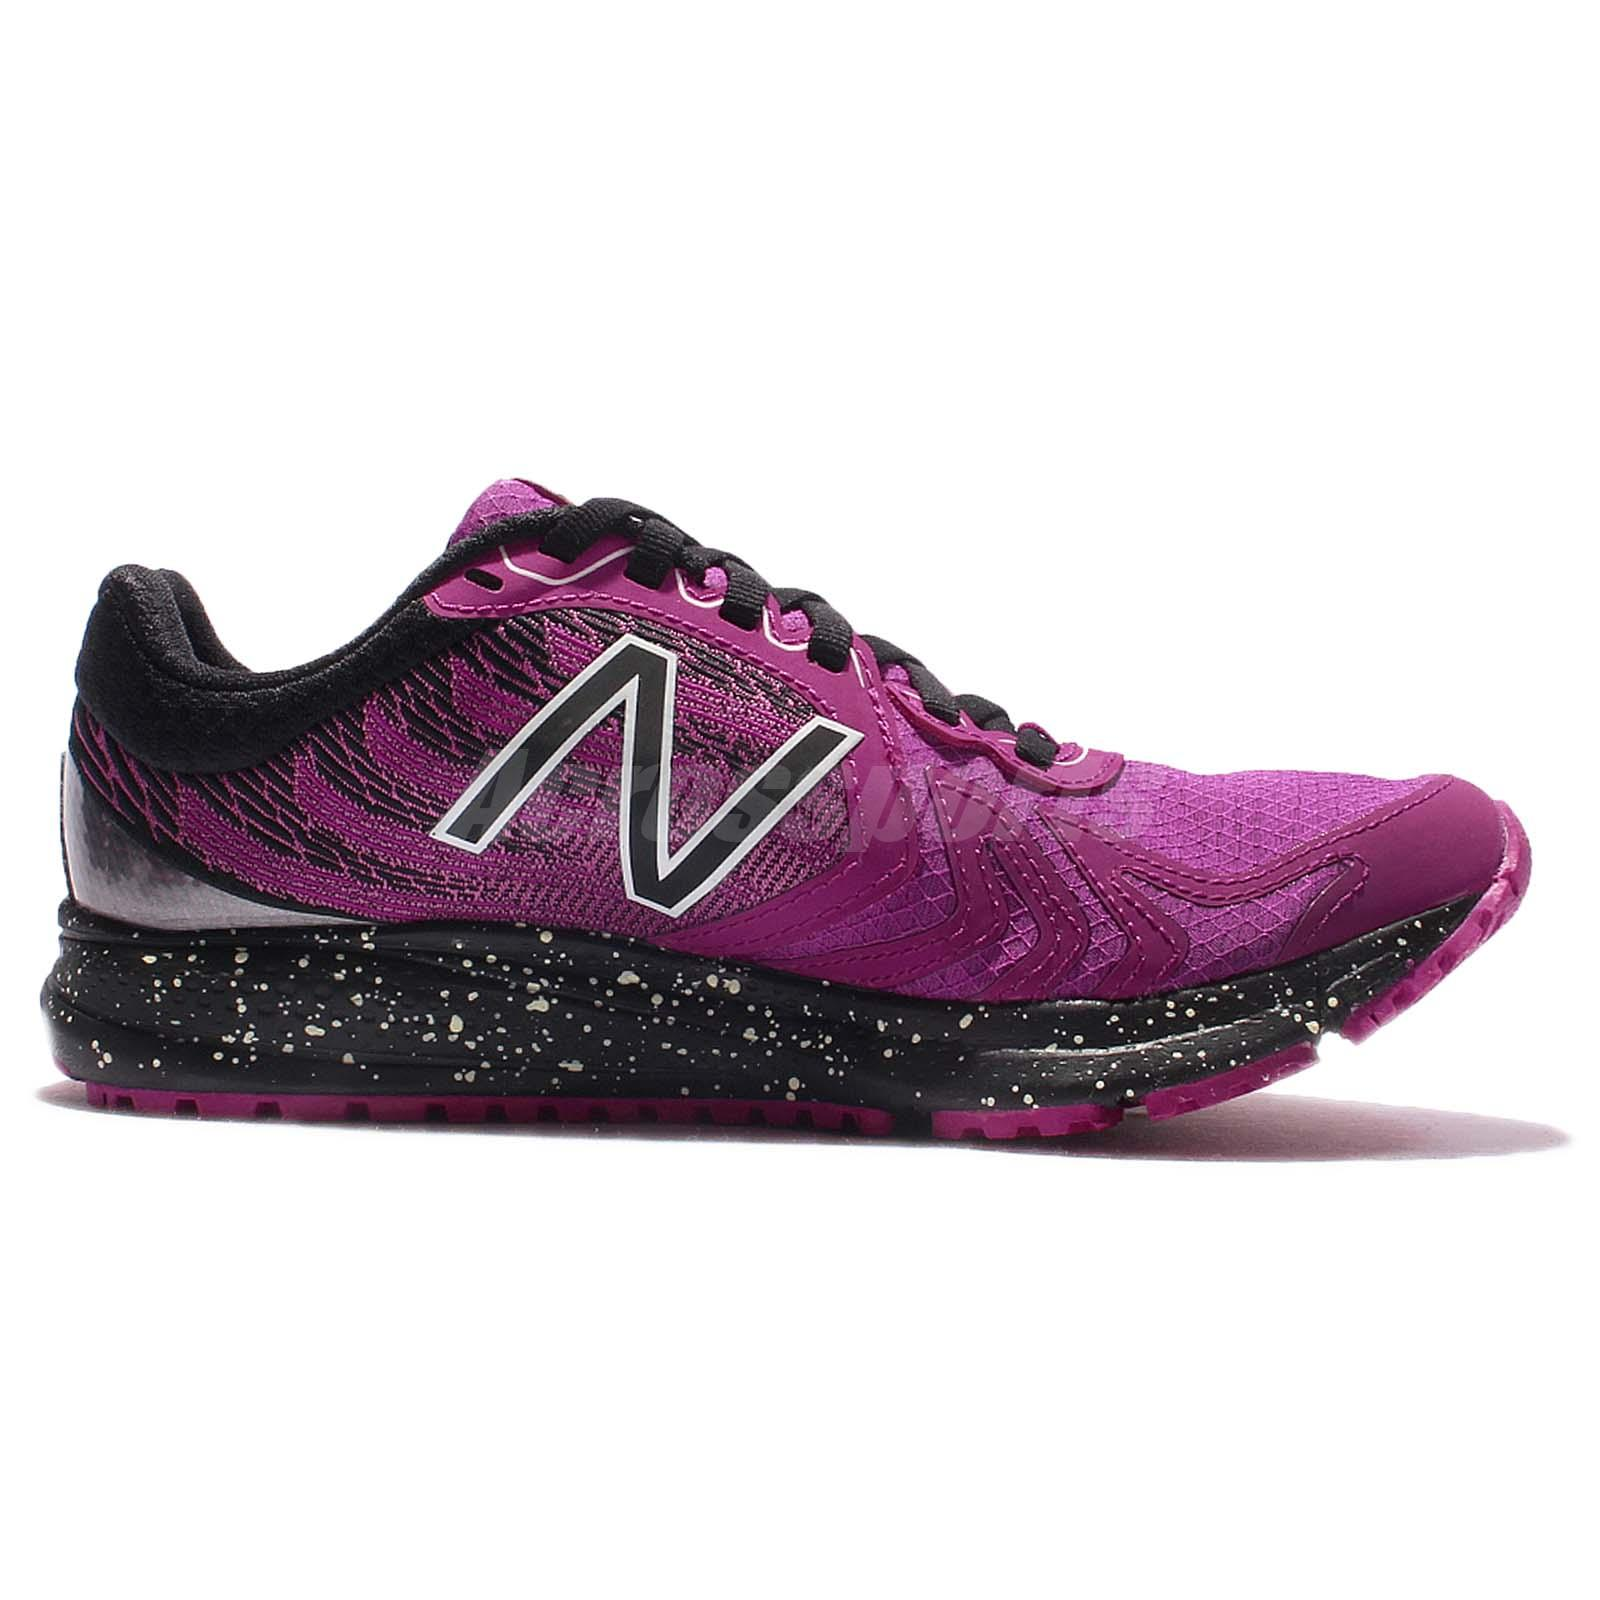 609527f16eed5 New Balance WPACEPP2 D Wide Vazee Pace v2 Protect Pack Purple Women Running